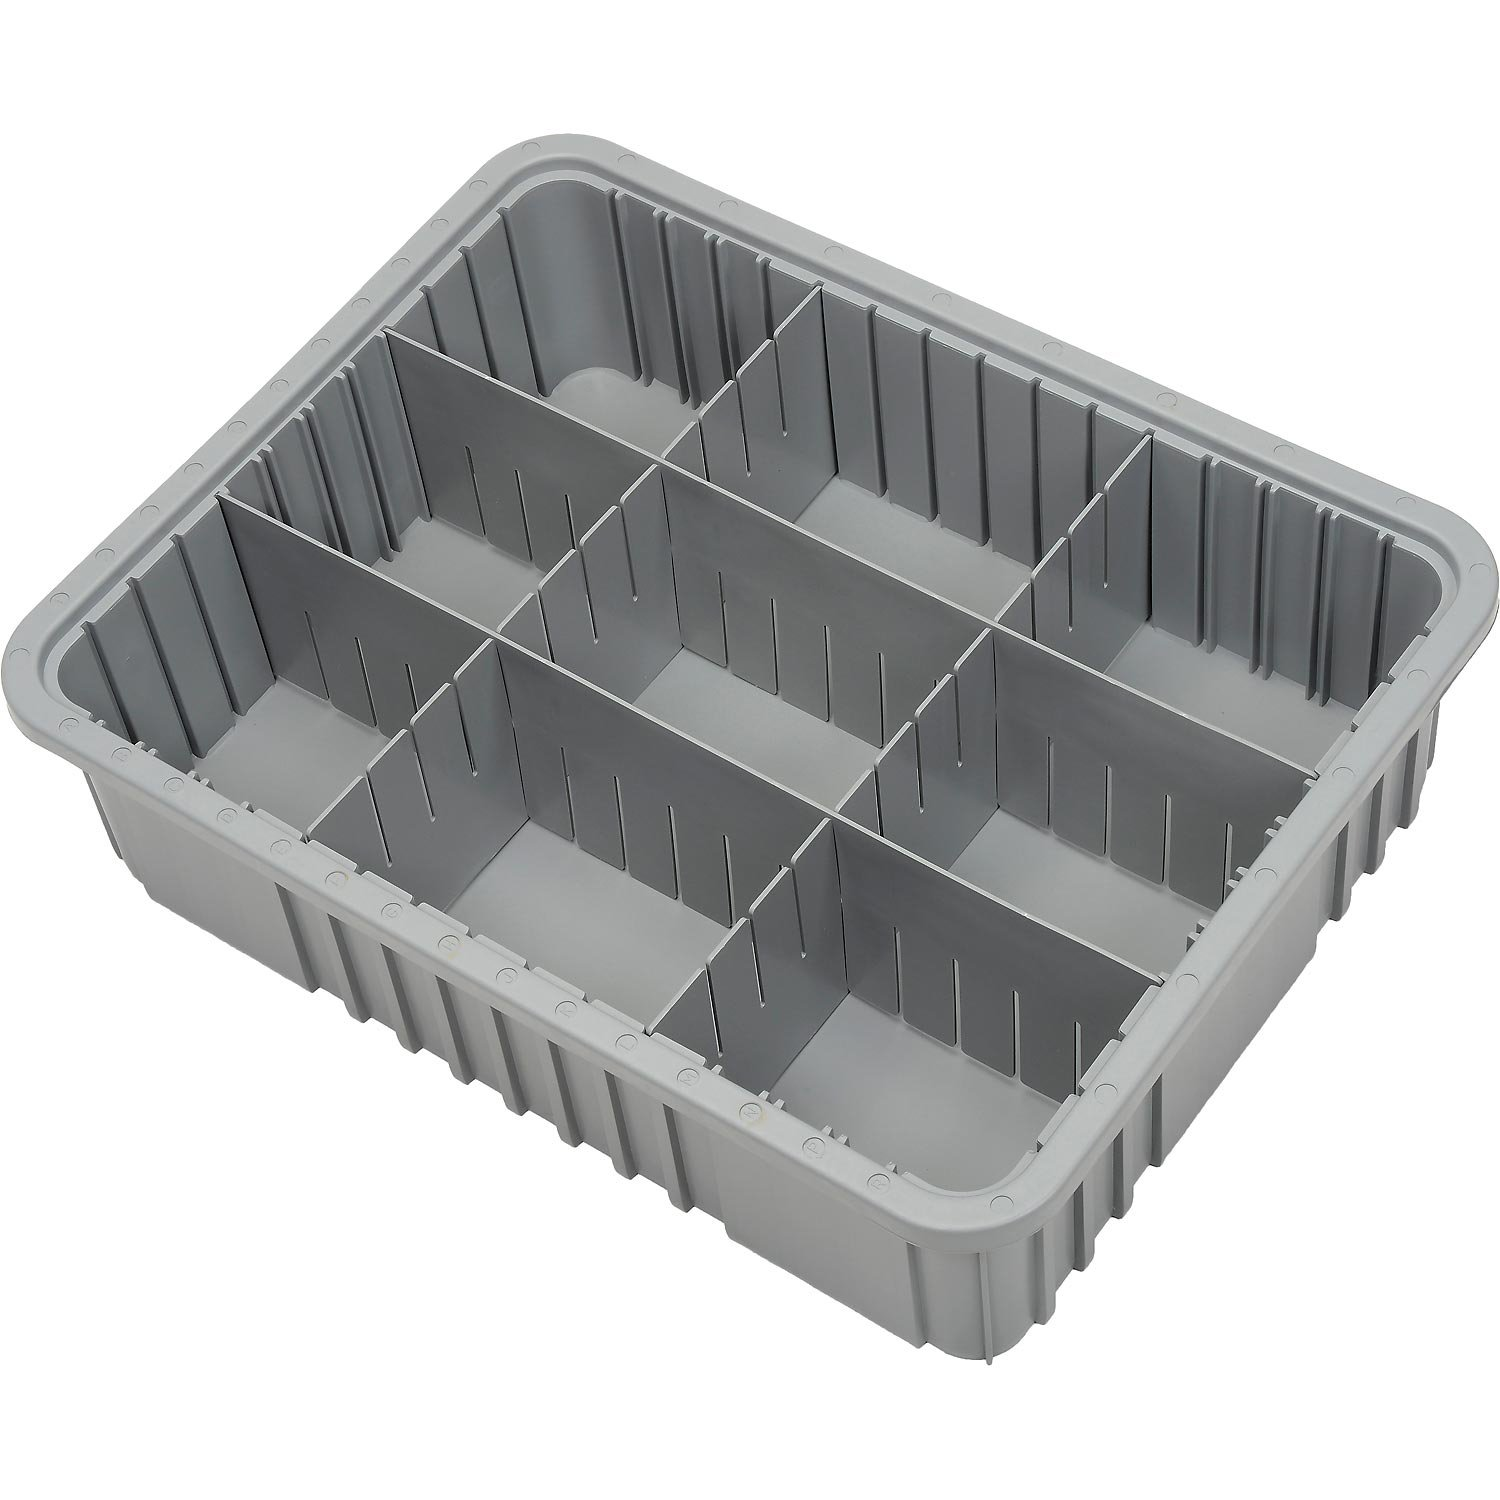 Plastic Dividable Grid Container, 22-1/2''L x 17-1/2''W x 6''H, Gray - Lot of 3